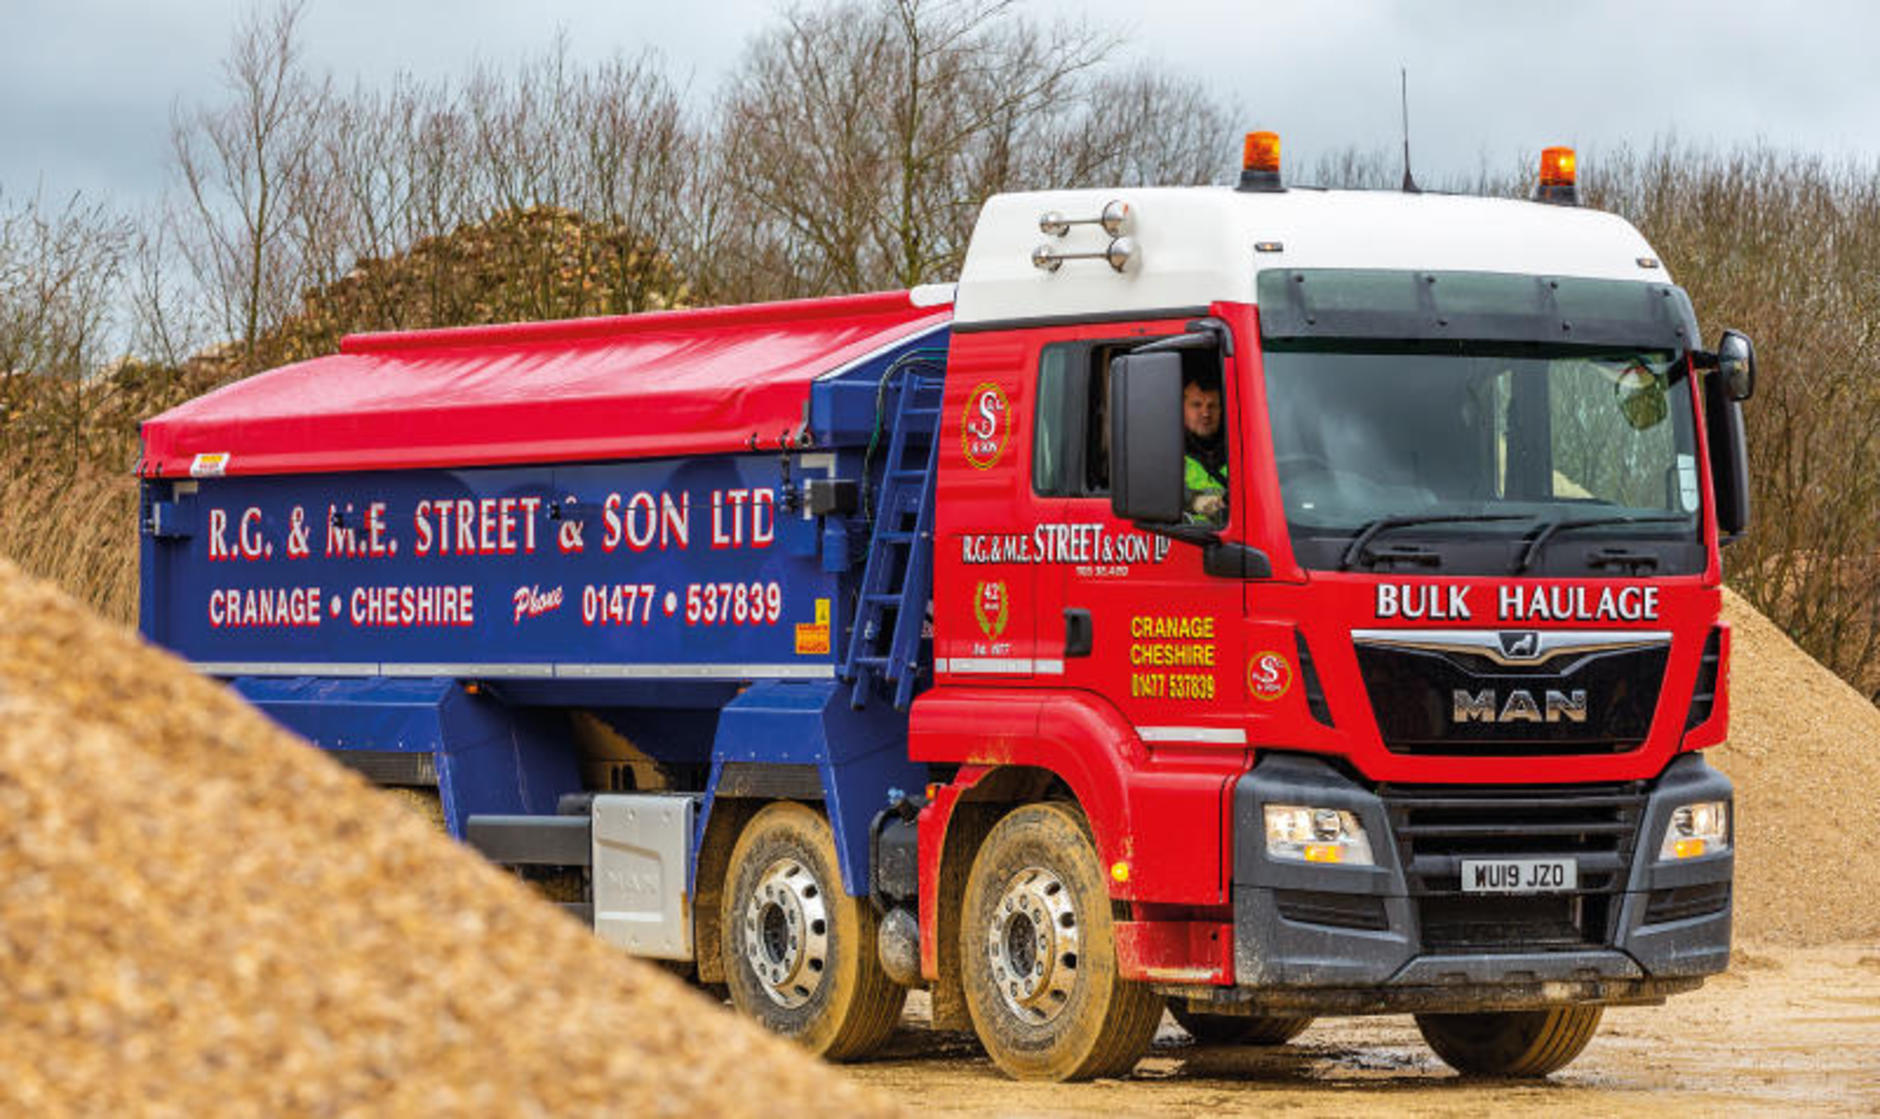 MAN TGS 32 420 – Tipper truck review | Commercial Motor